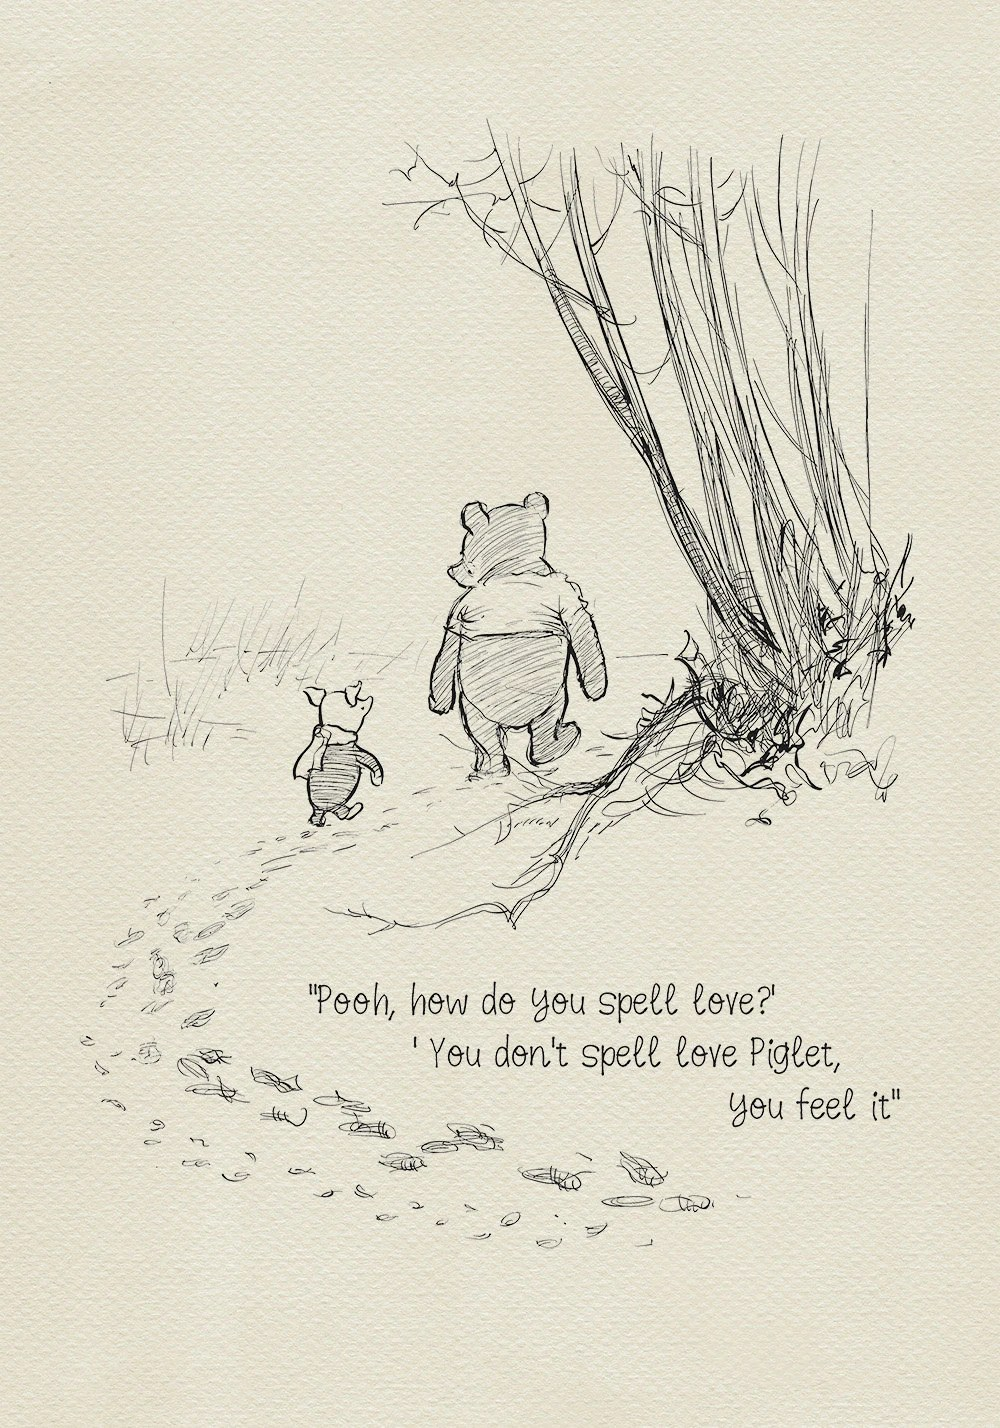 Winnie The Pooh Fall Wallpaper Pooh How Do You Spell Love Winnie The Pooh Quotes